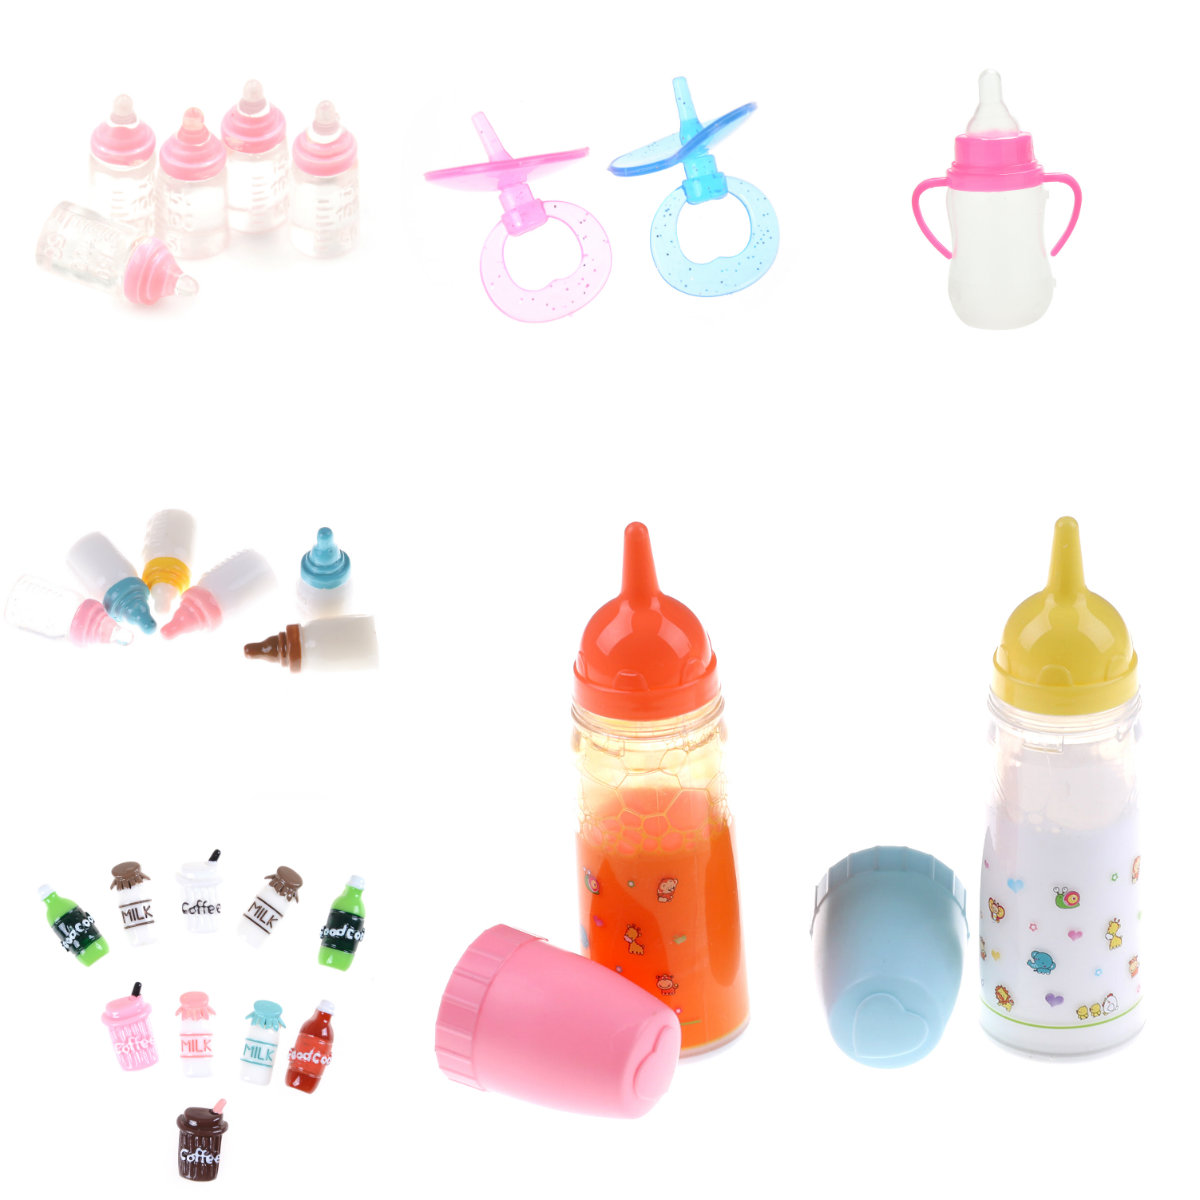 Strange Magic Prop Milk Bottle Liquid Disappearing Milk Accessories Children Gift Toy Magic Baby Reborn Dolls Feeding Bottle Toy